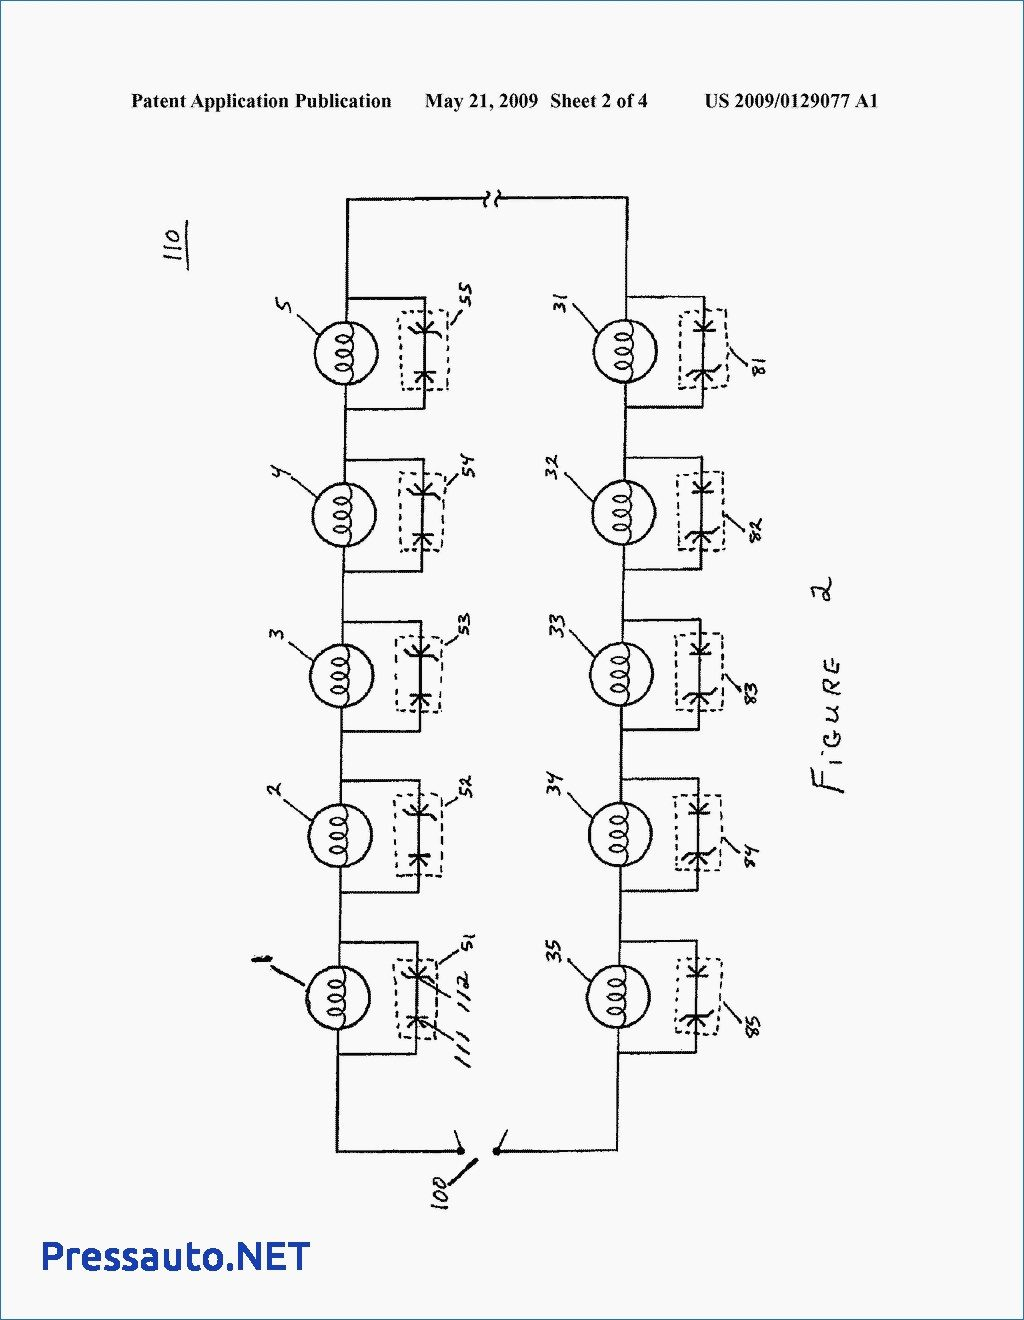 Relay Headlight Circuit Wiring Diagram Drawing At Free For Personal Use 1024x1320 Wire Led Trailer Light Hid